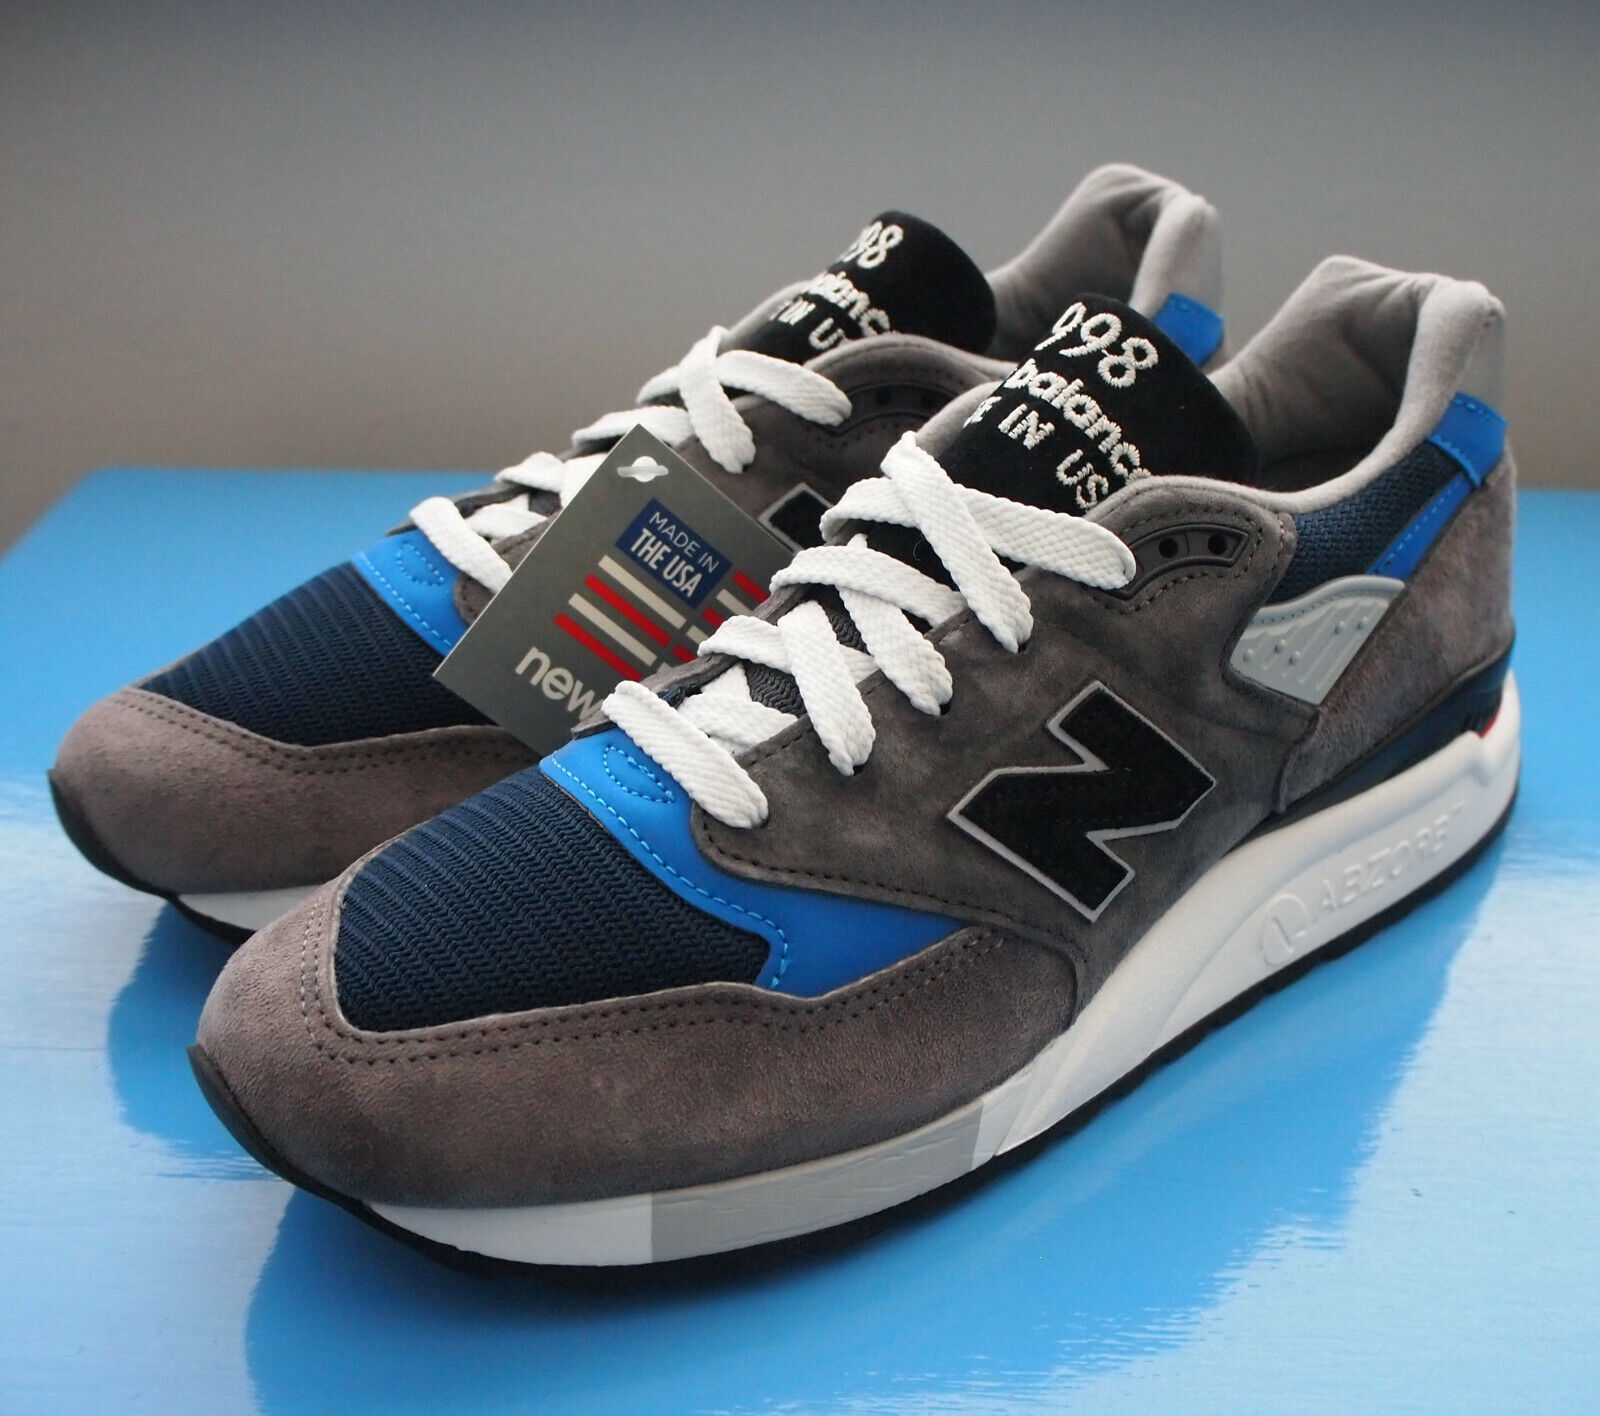 New Balance M998NF UK 9 998 Made in the USA